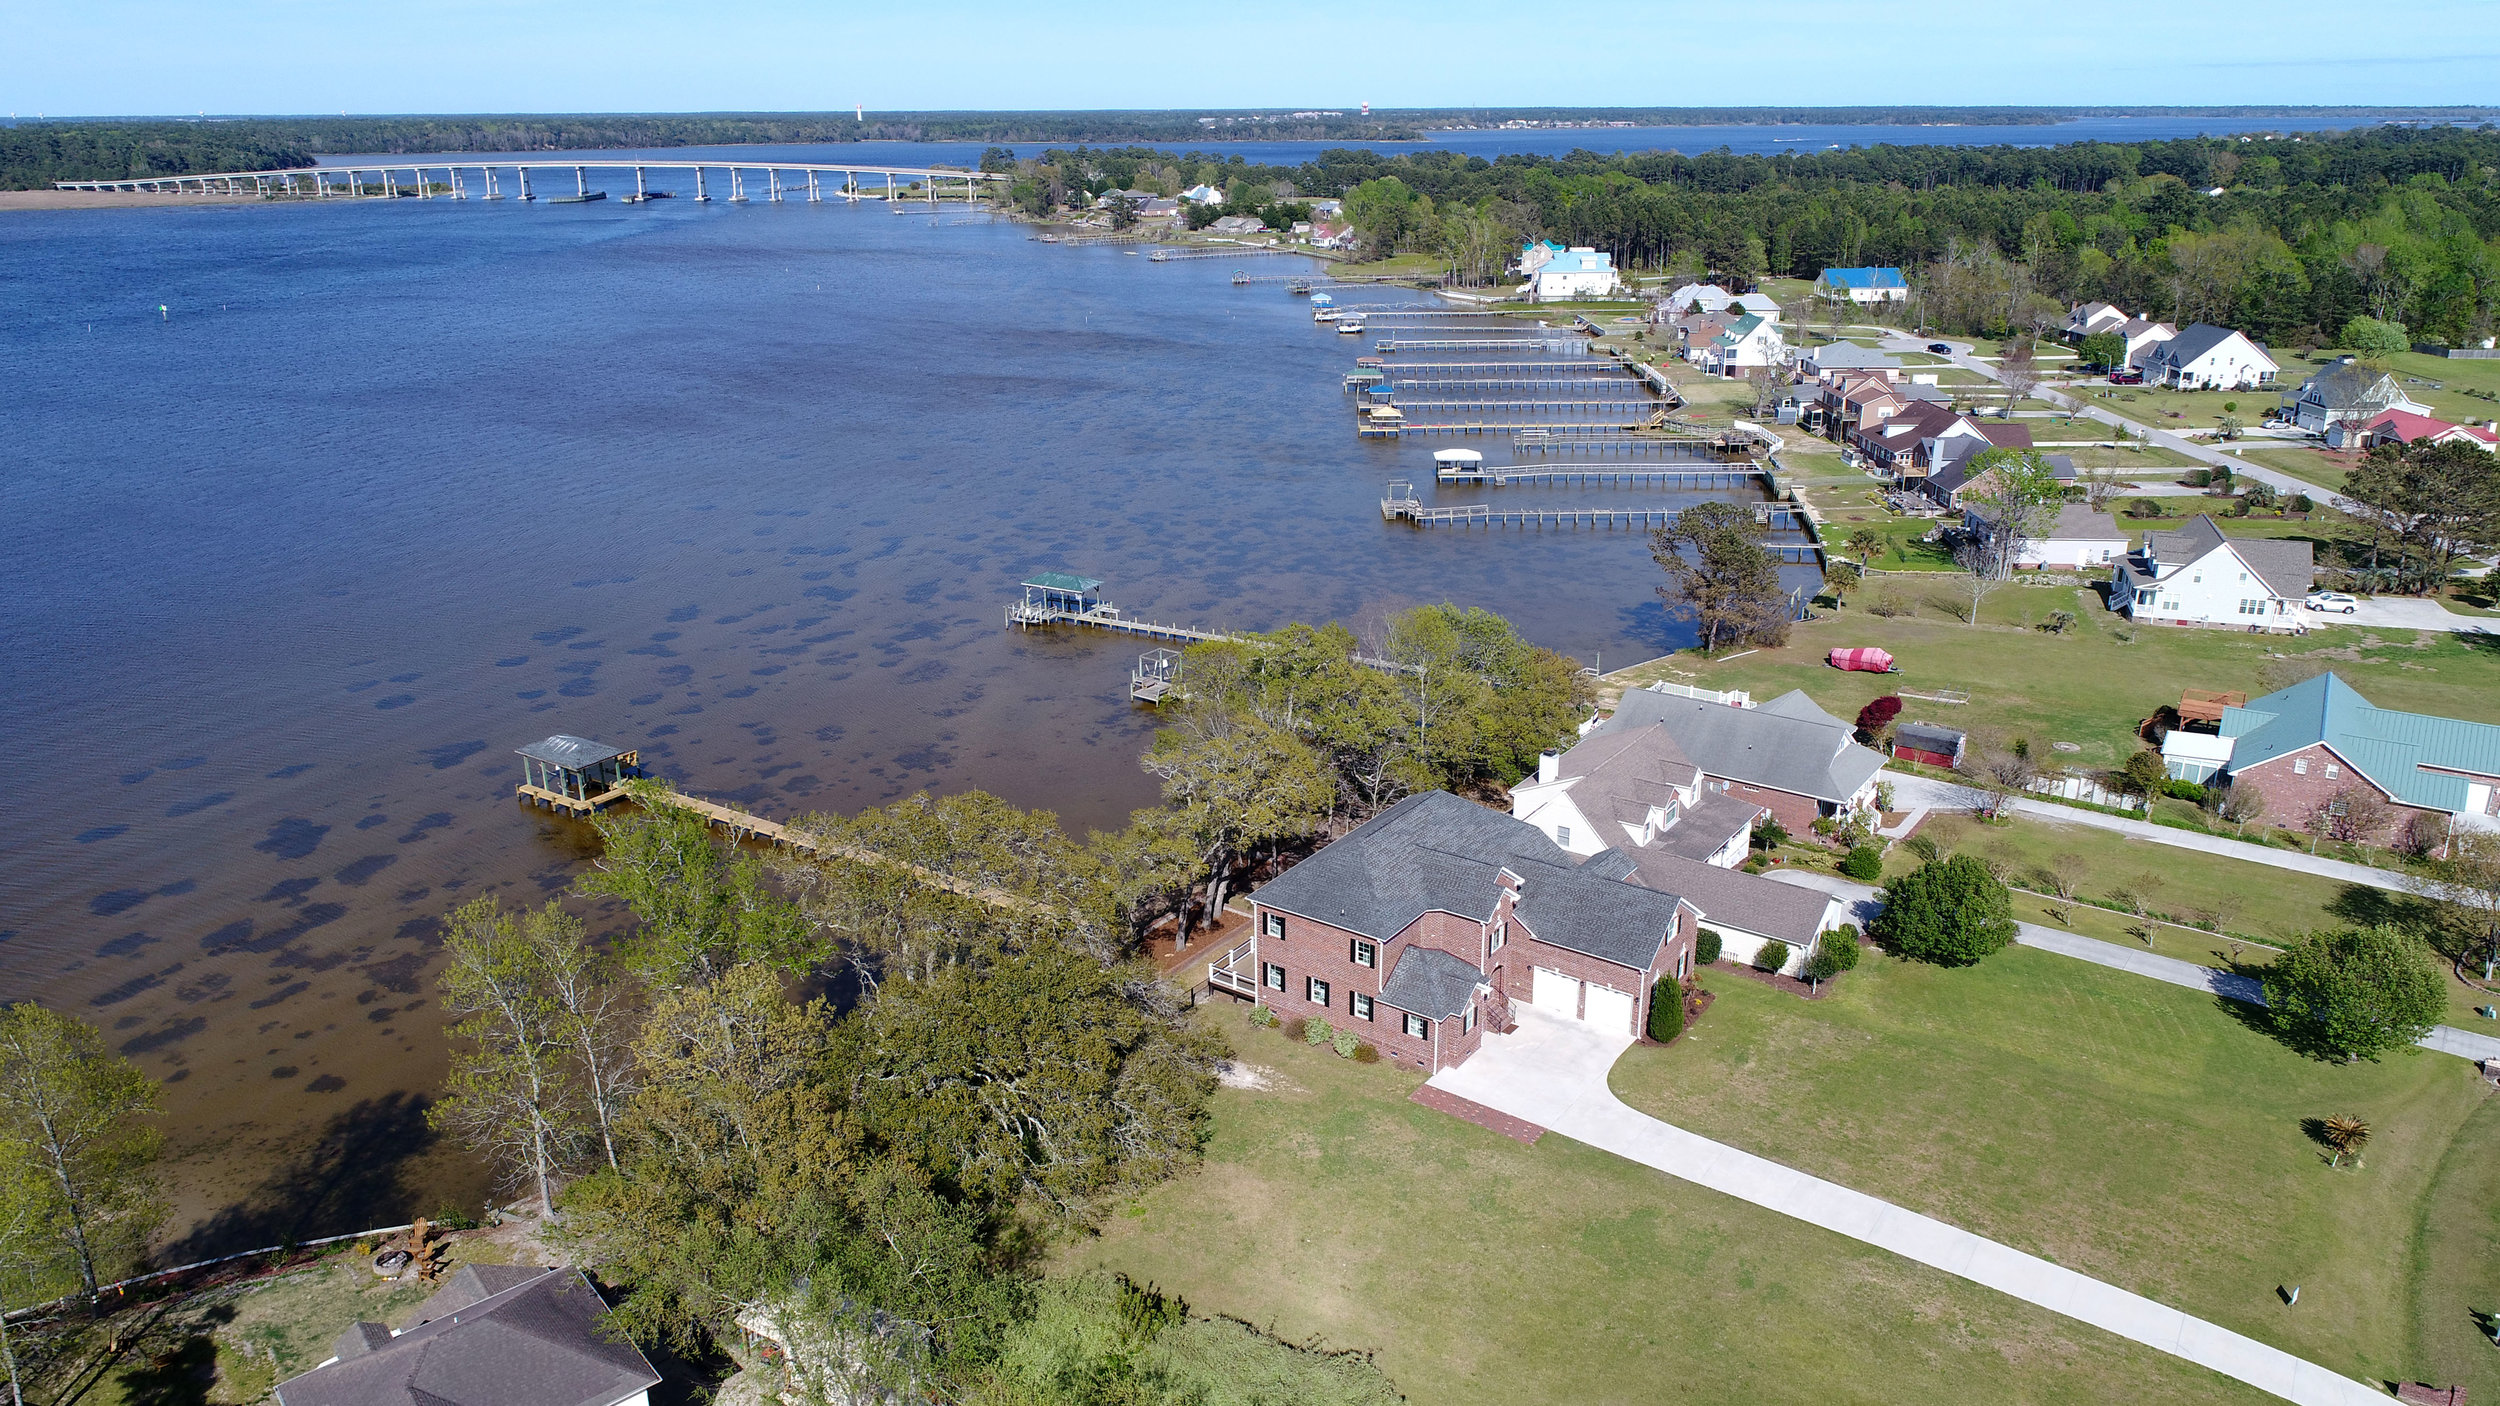 710 Willbrook Cir Sneads Ferry-print-060-59-DJI 0041-4200x2362-300dpi.jpg